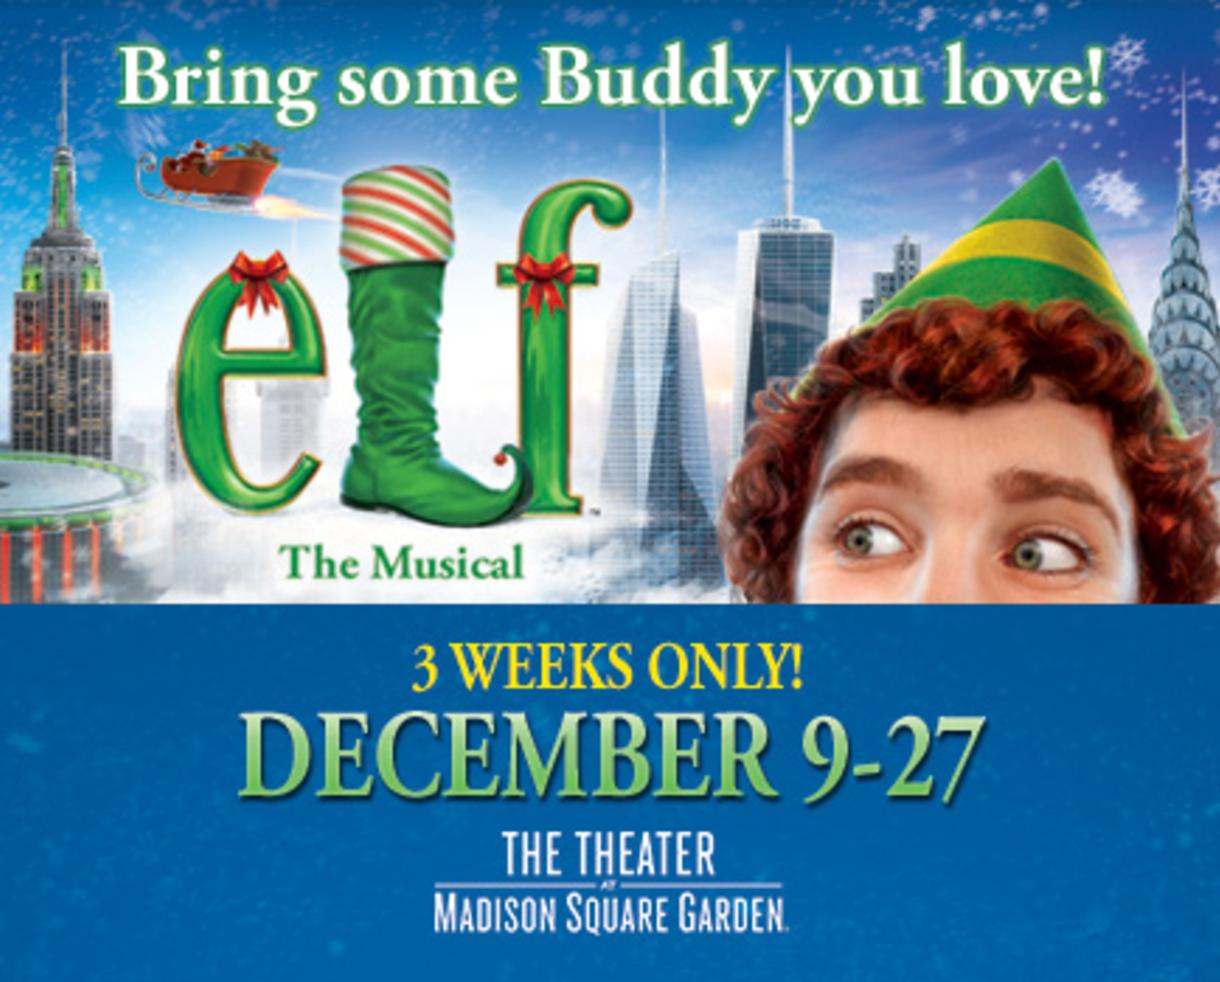 29 for elf the musical at the theater at madison square garden ny from dec9 27 up to 35 off - The Theater At Madison Square Garden